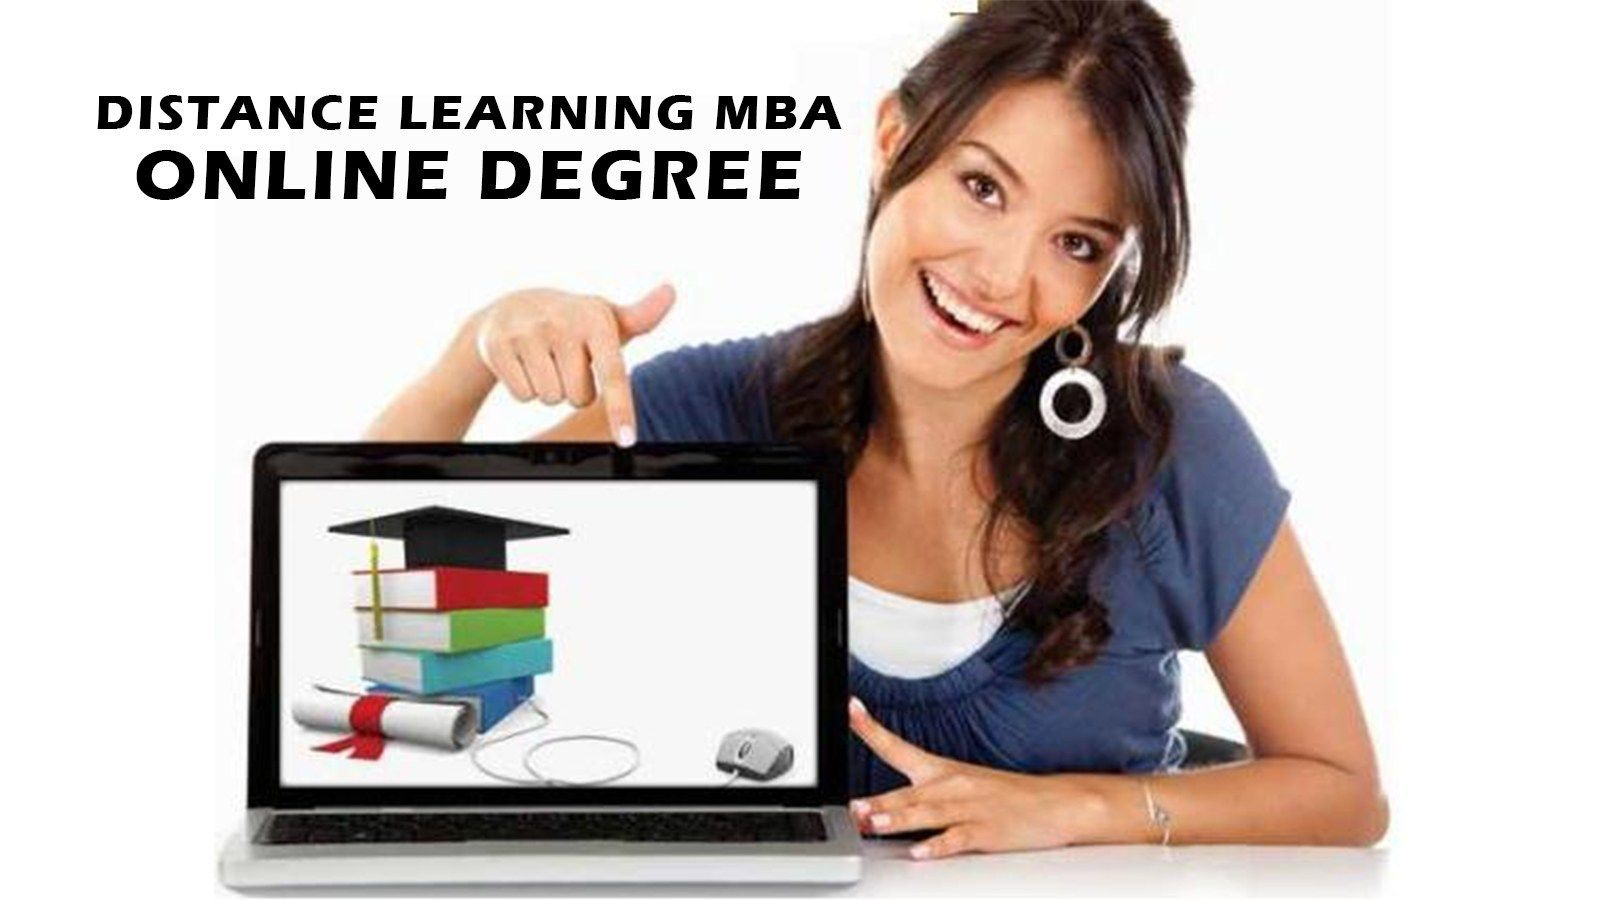 Distance Learning MBA Online Degree Distance learning